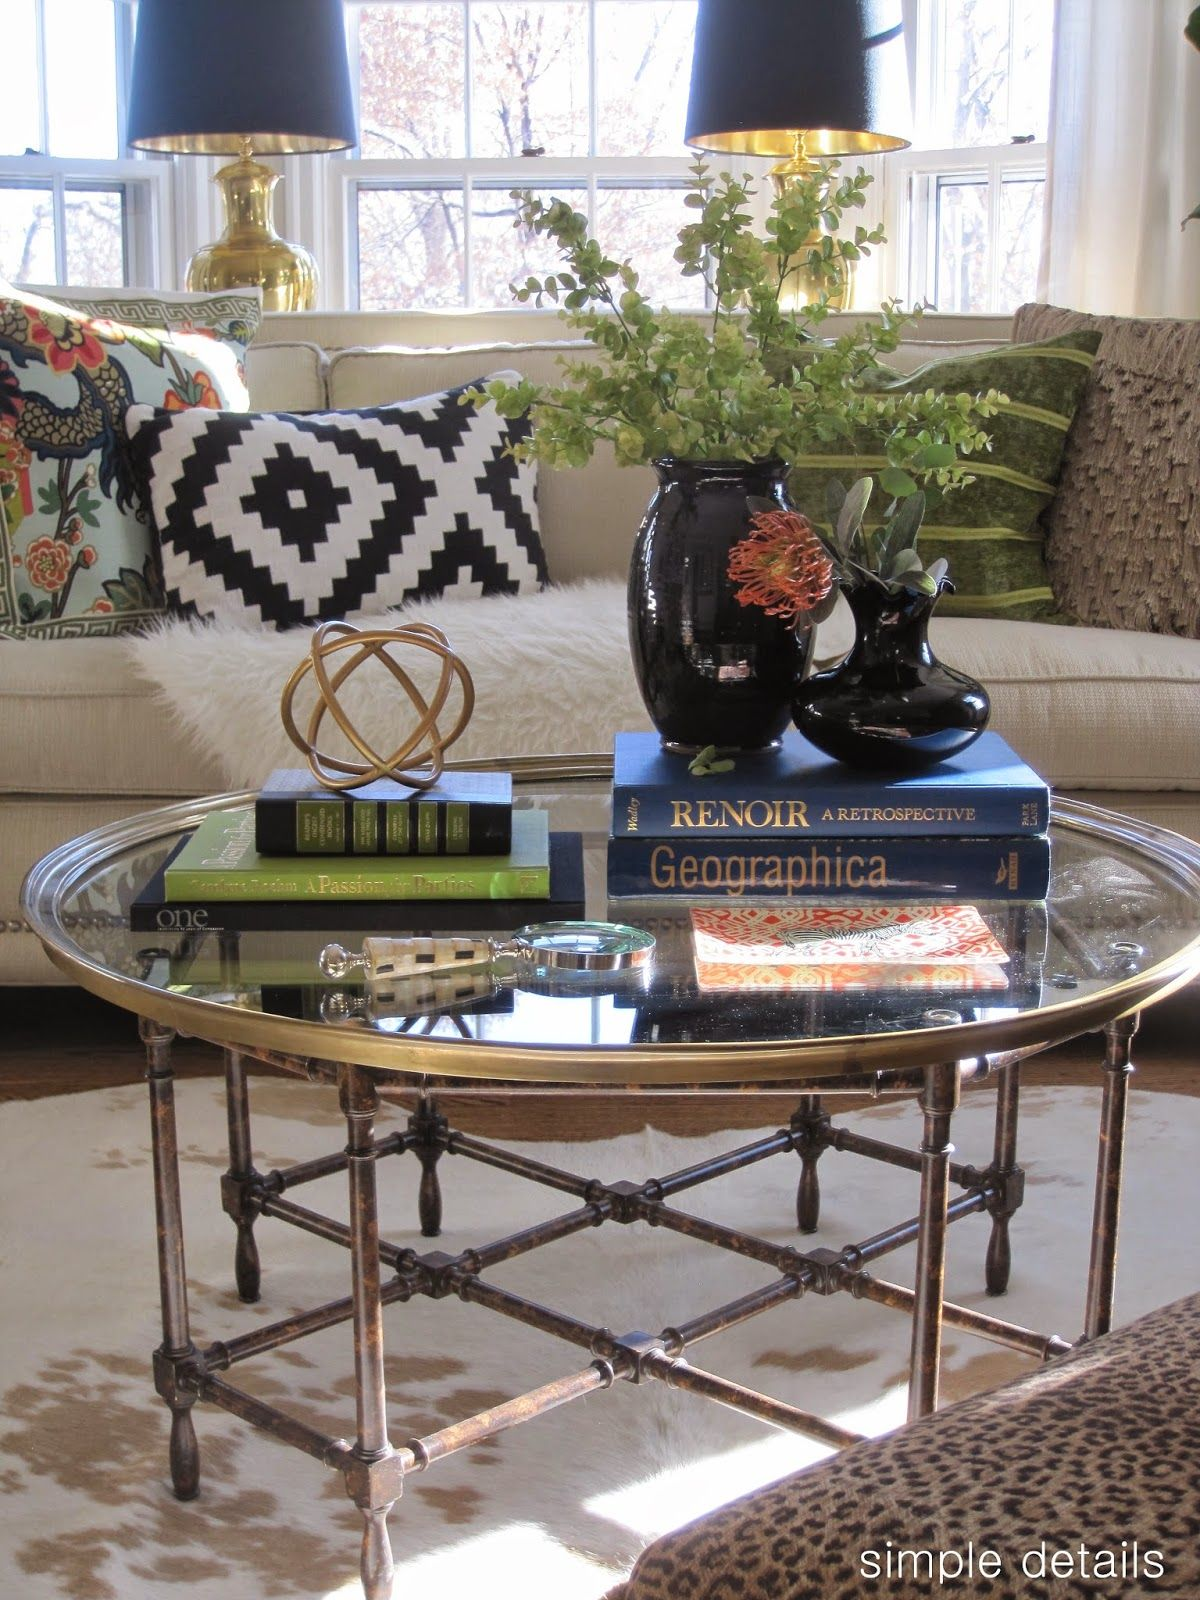 Unique Coffee Table Decor Project Design How To Style Your Coffee Table Simple Details